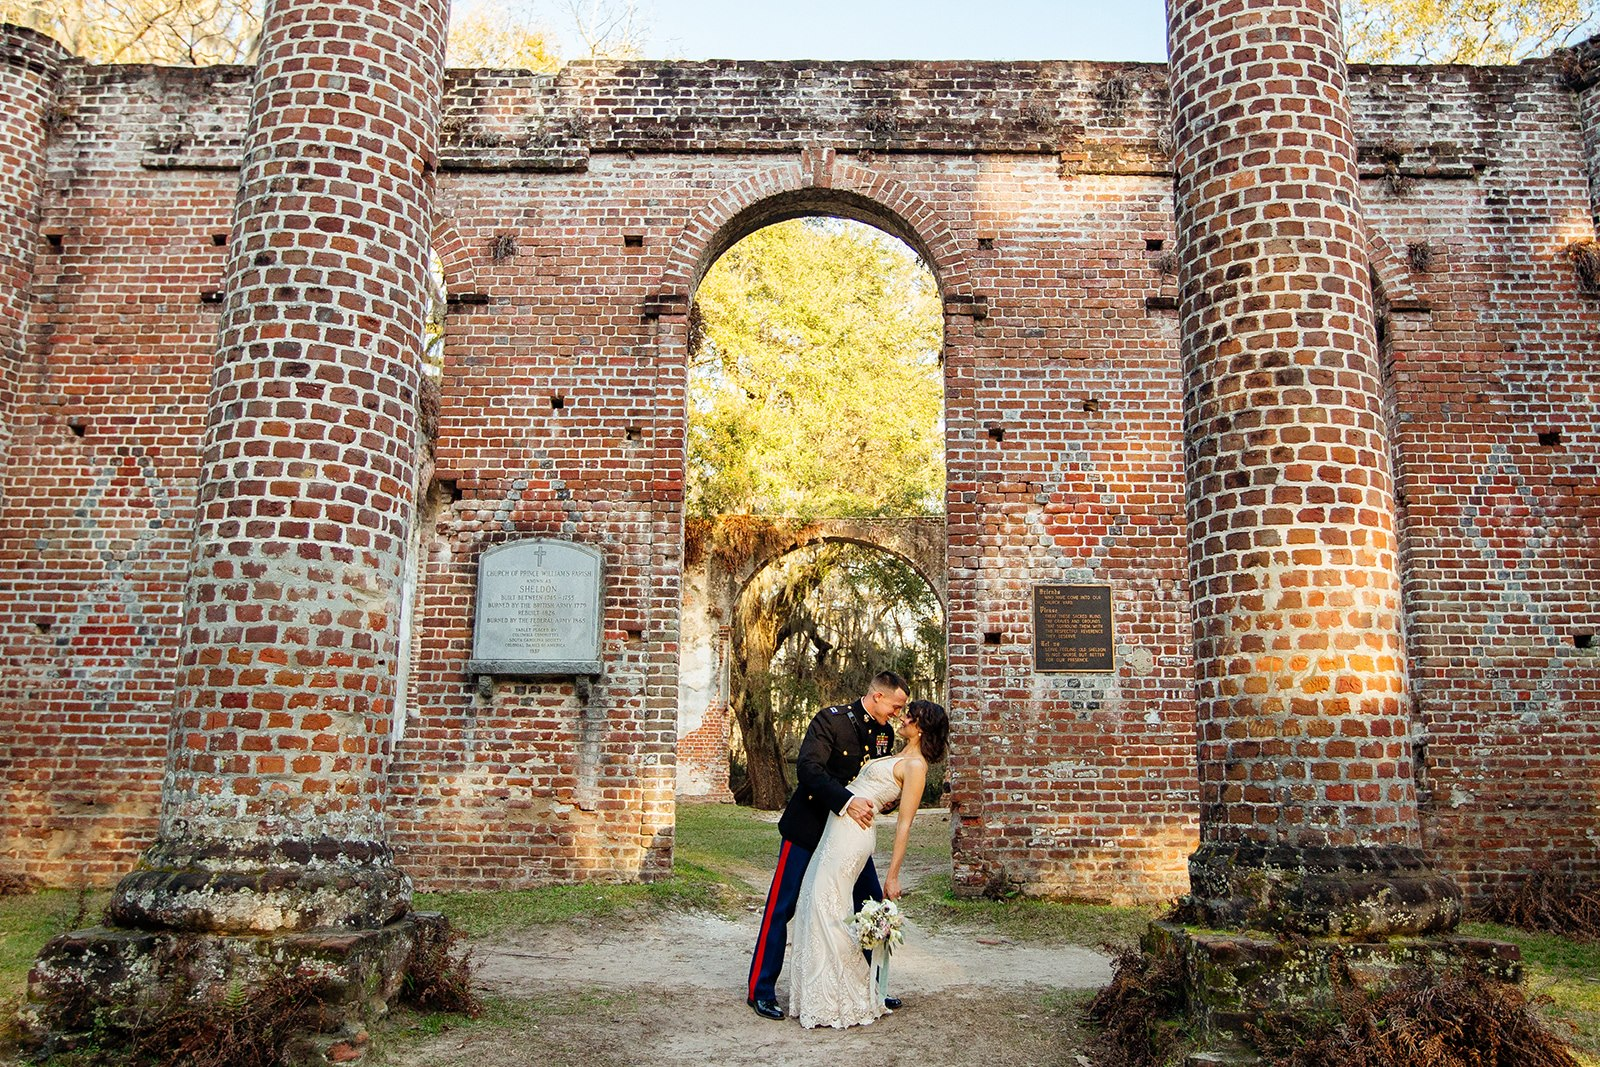 Liz & Josh - Old Sheldon church ruins